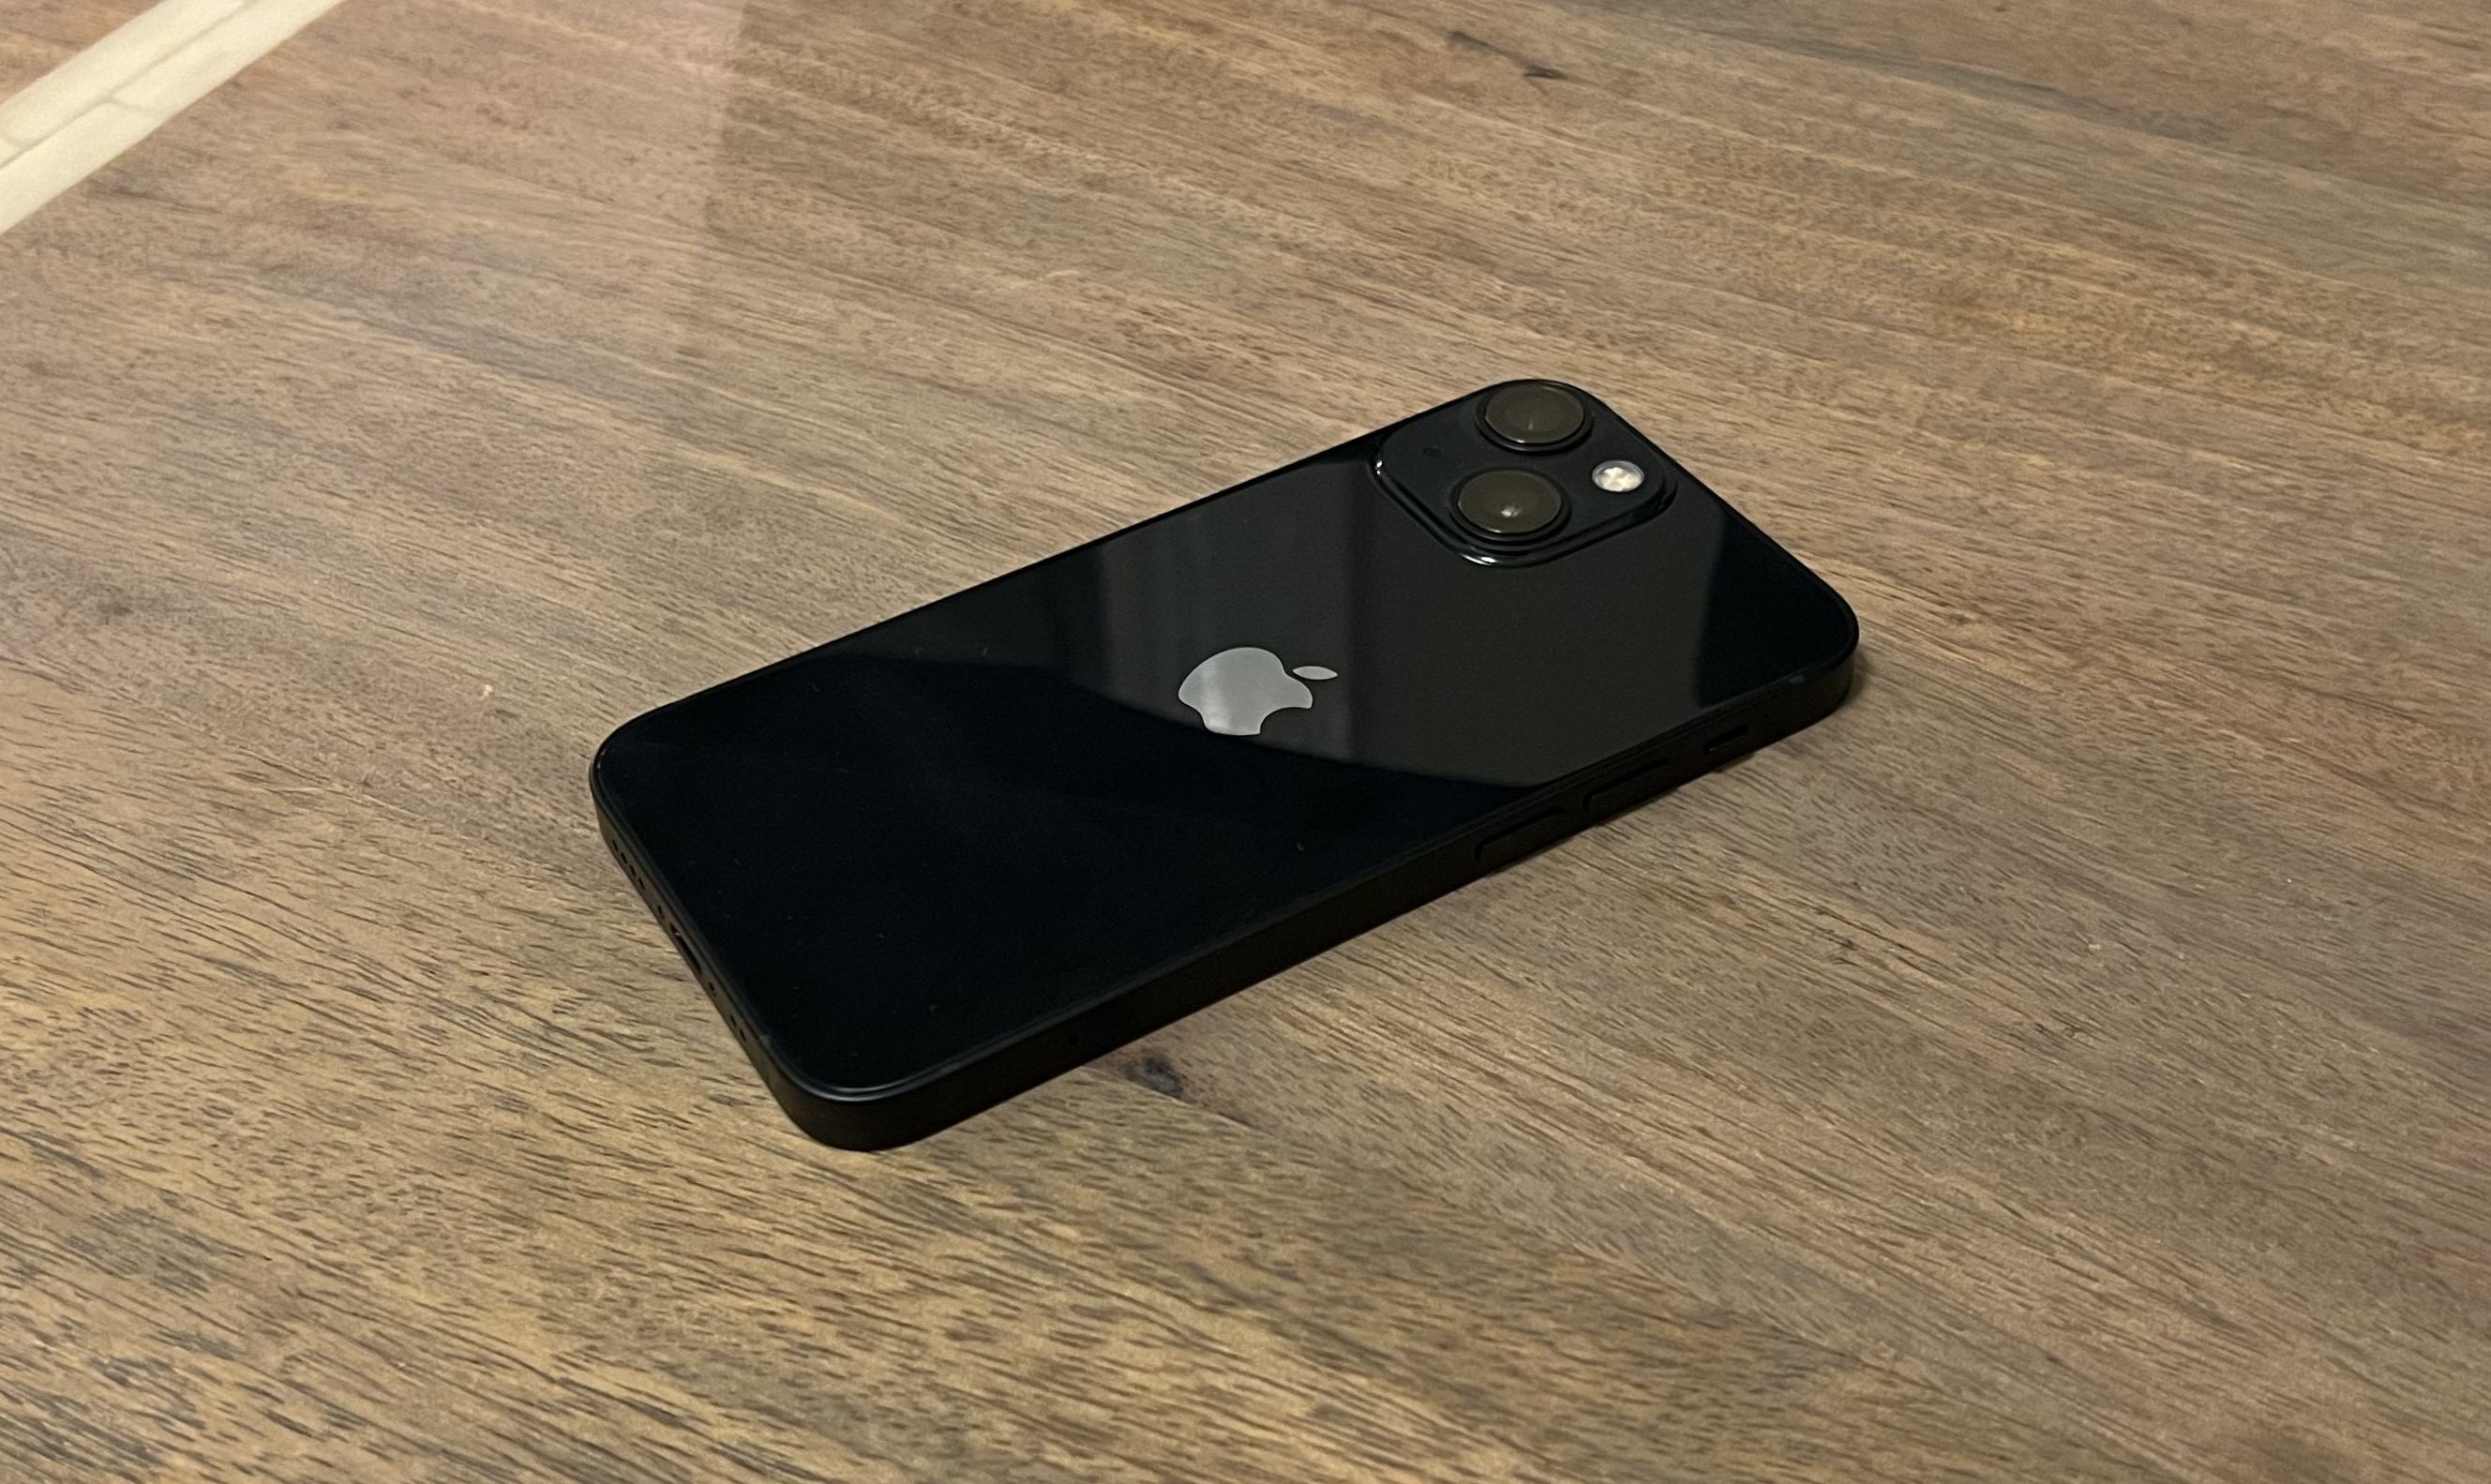 The back of the iPhone 13 mini.